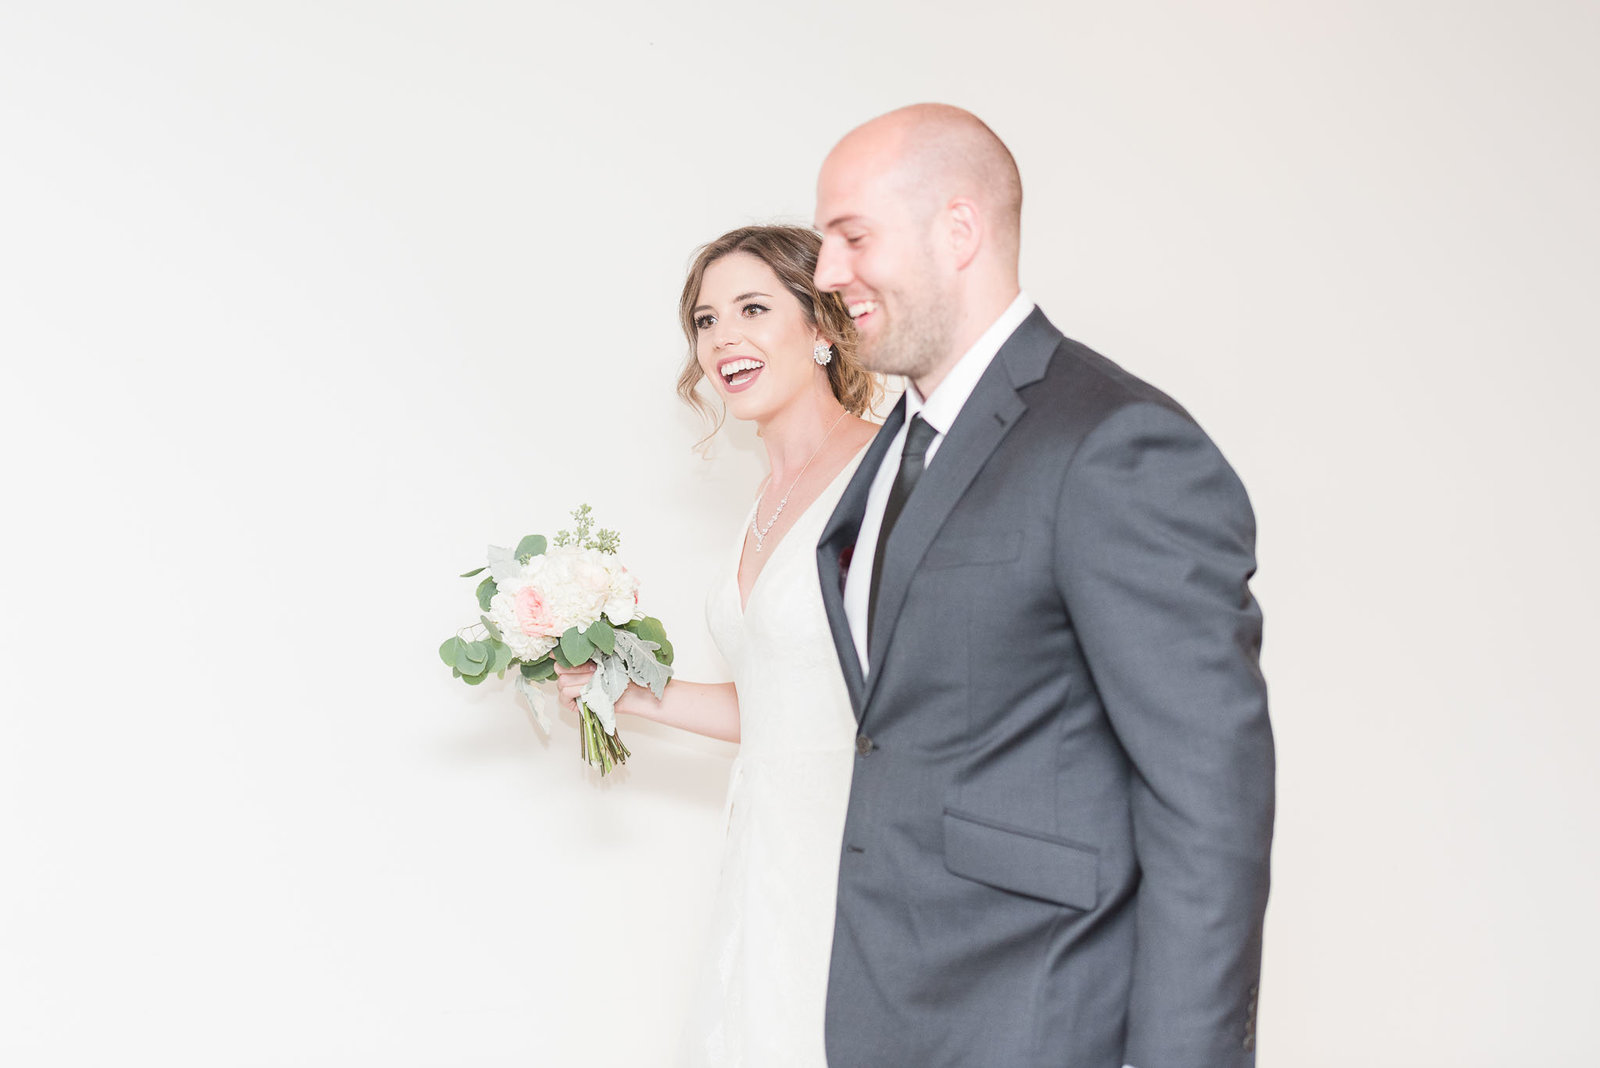 Erin-Kyle-Wedding-185919